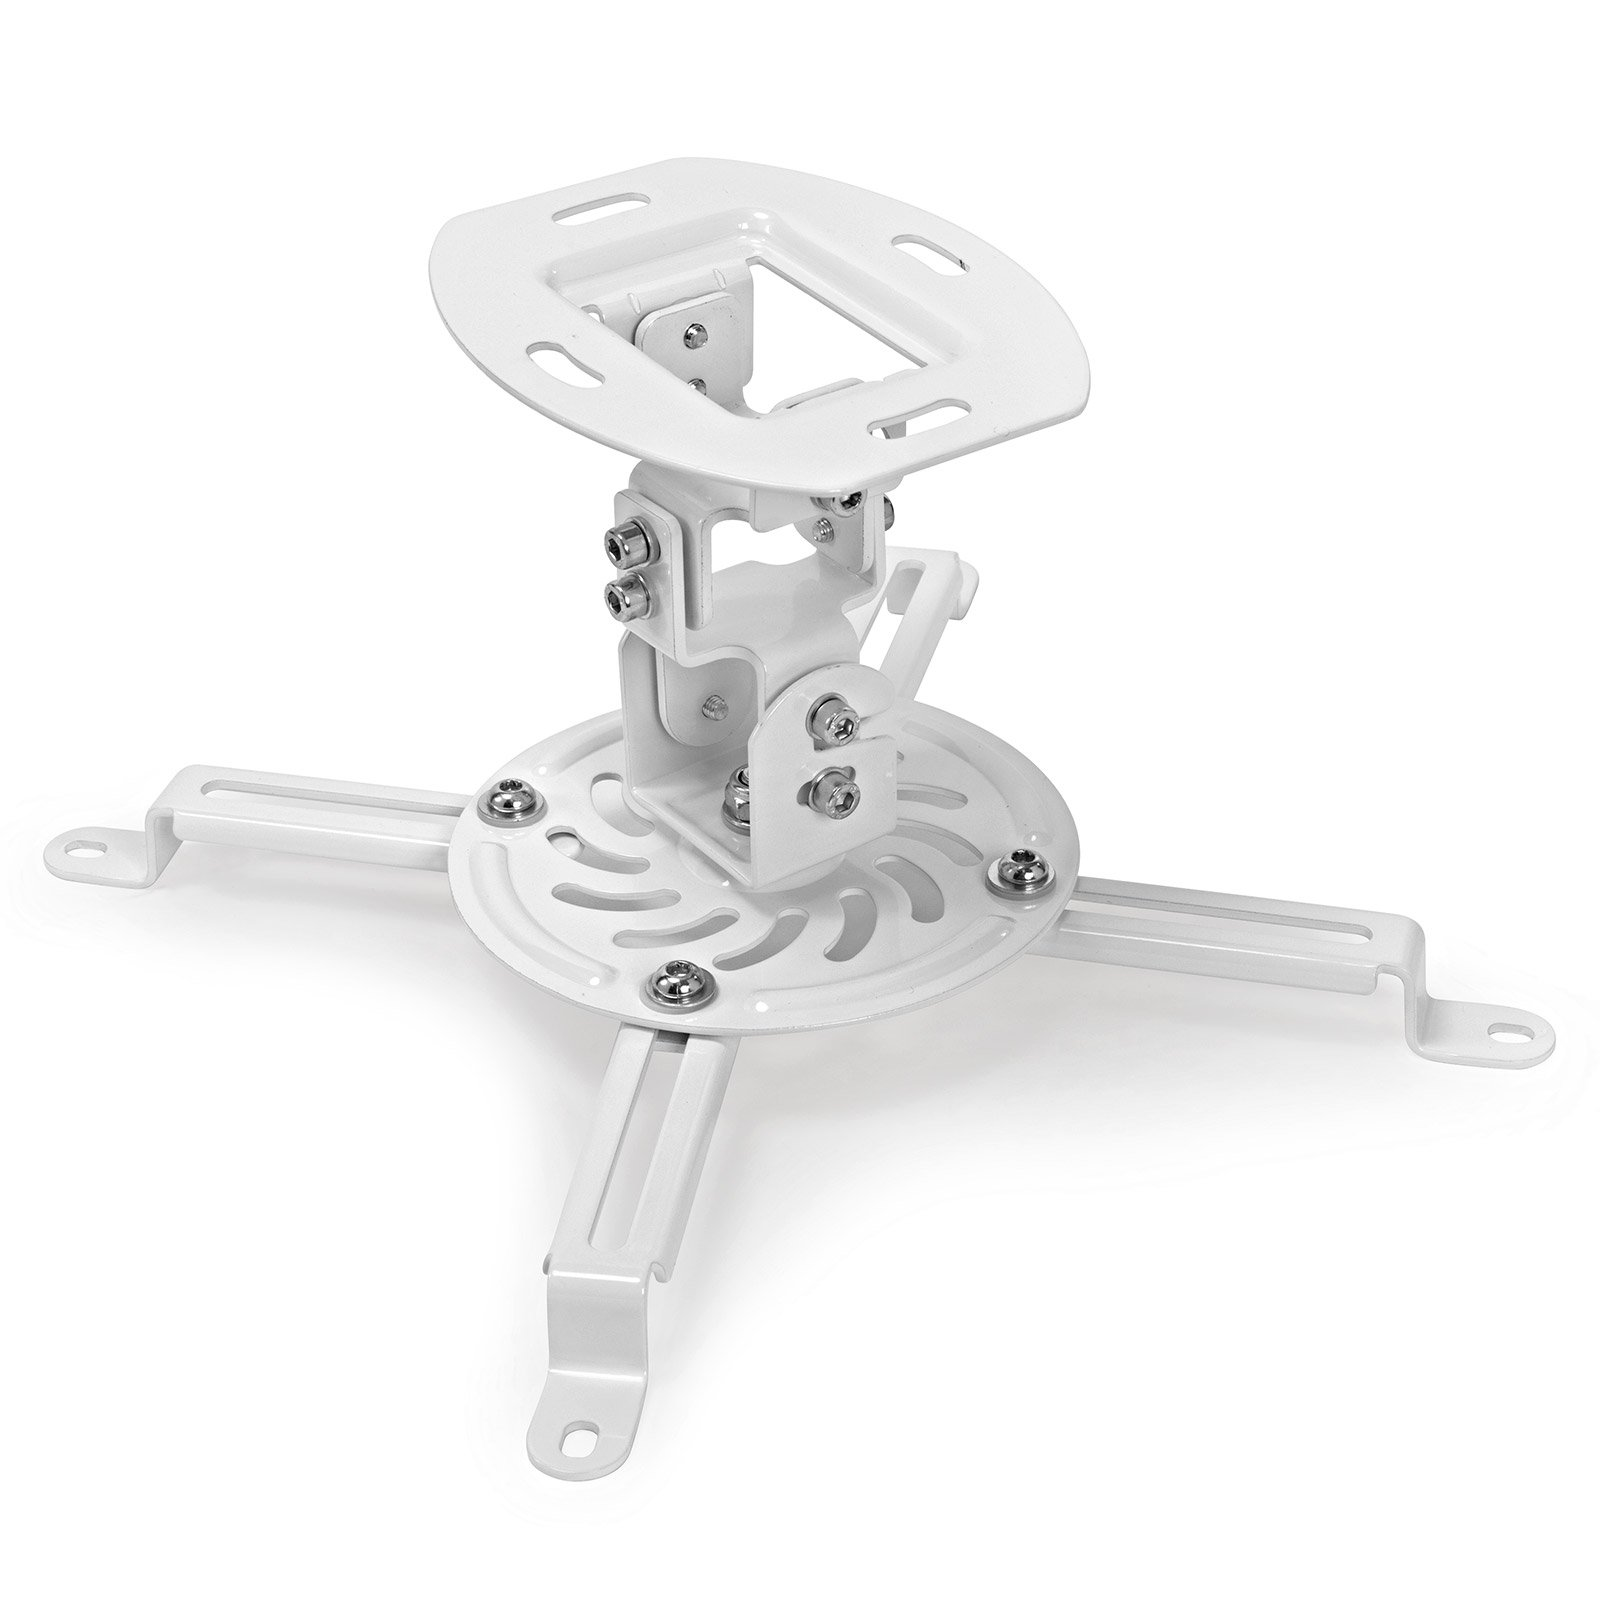 Mount Factory Universal Low Profile Ceiling Projector Mount - White